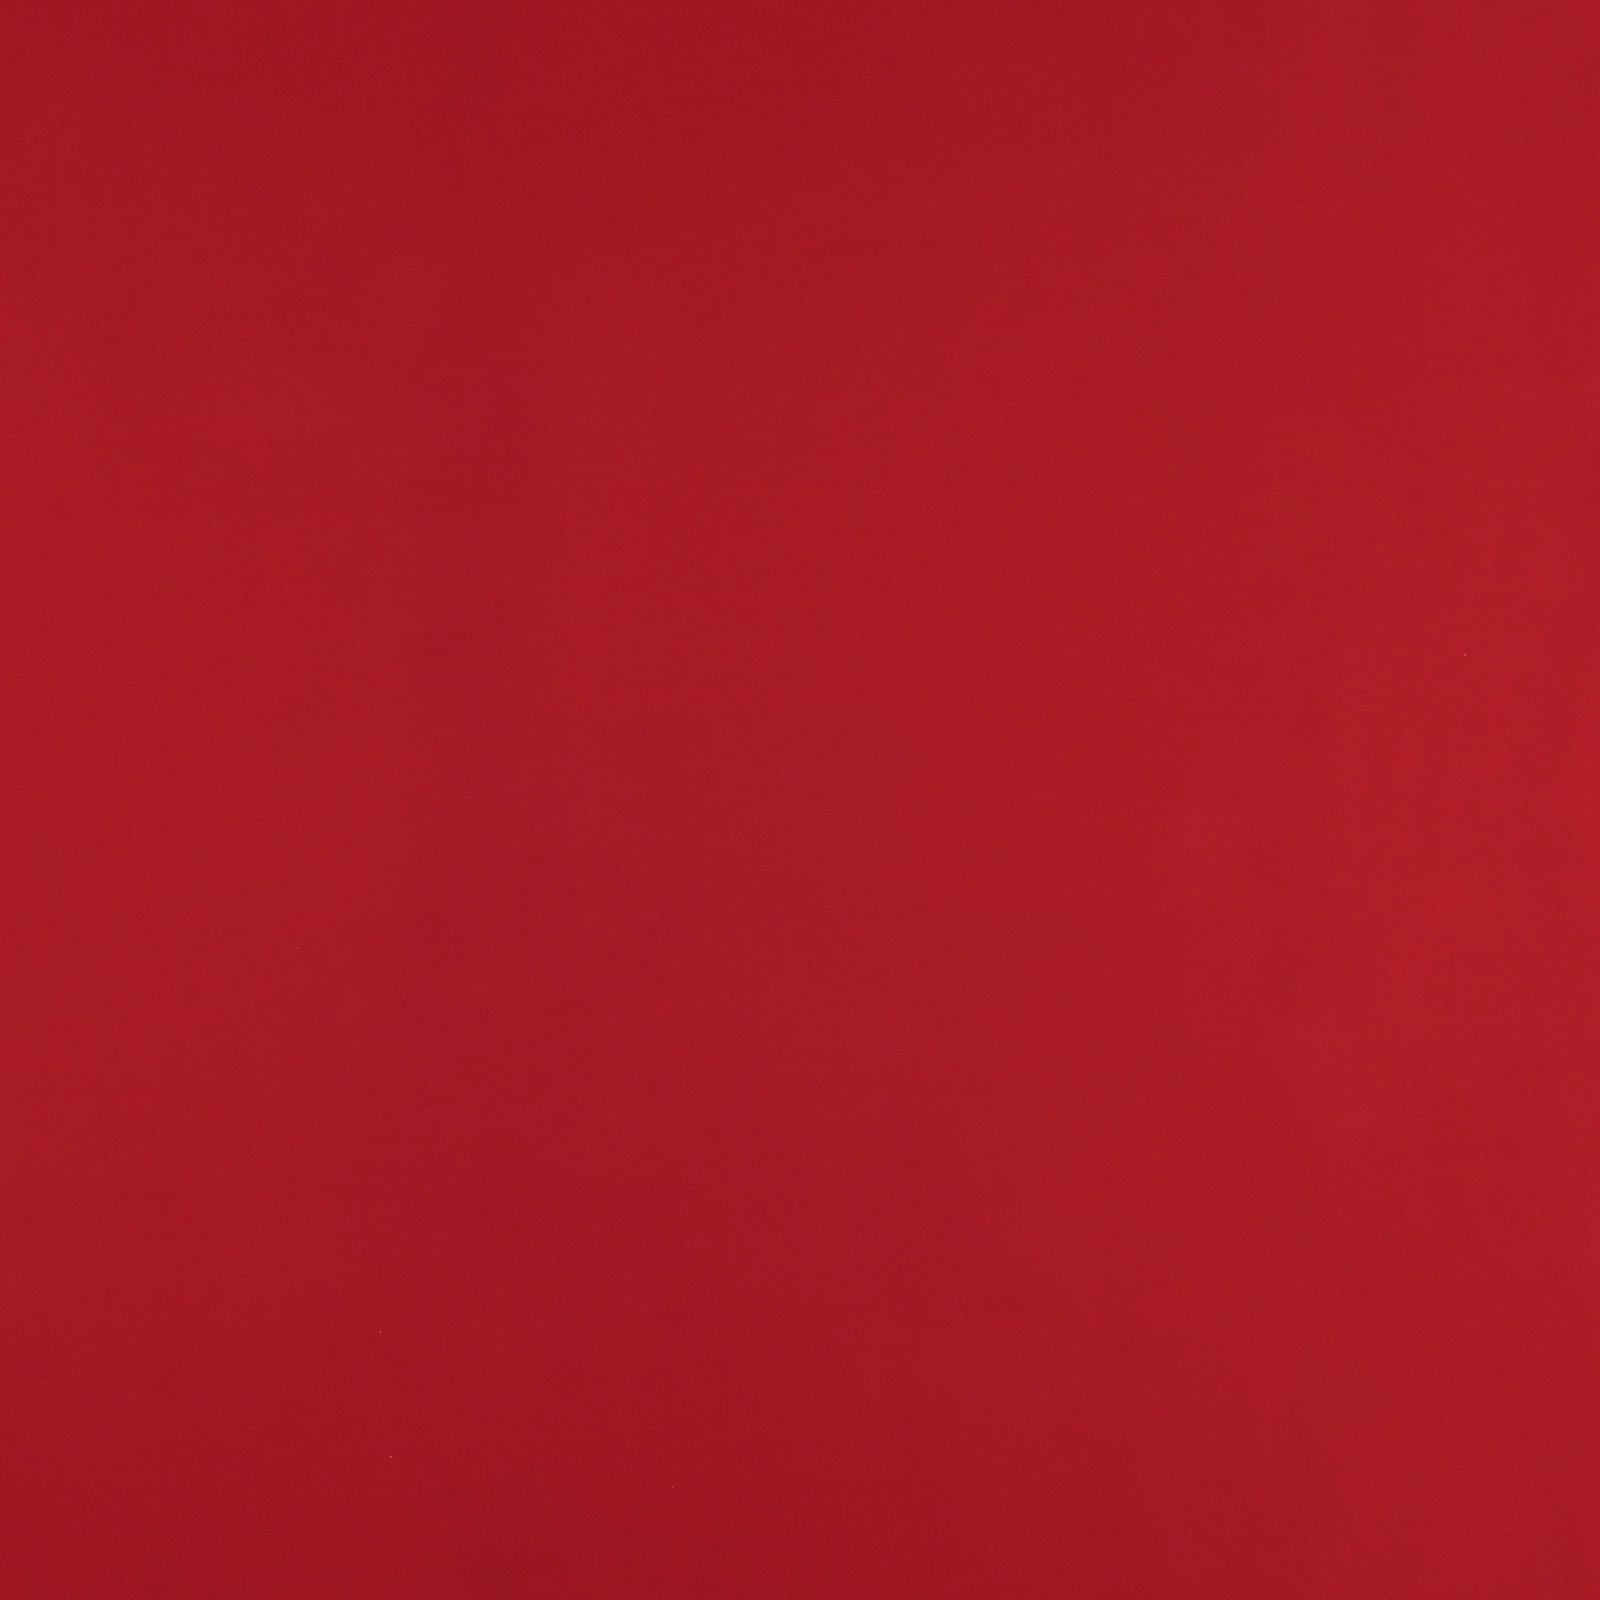 Viscose jersey red 270958_pack_solid